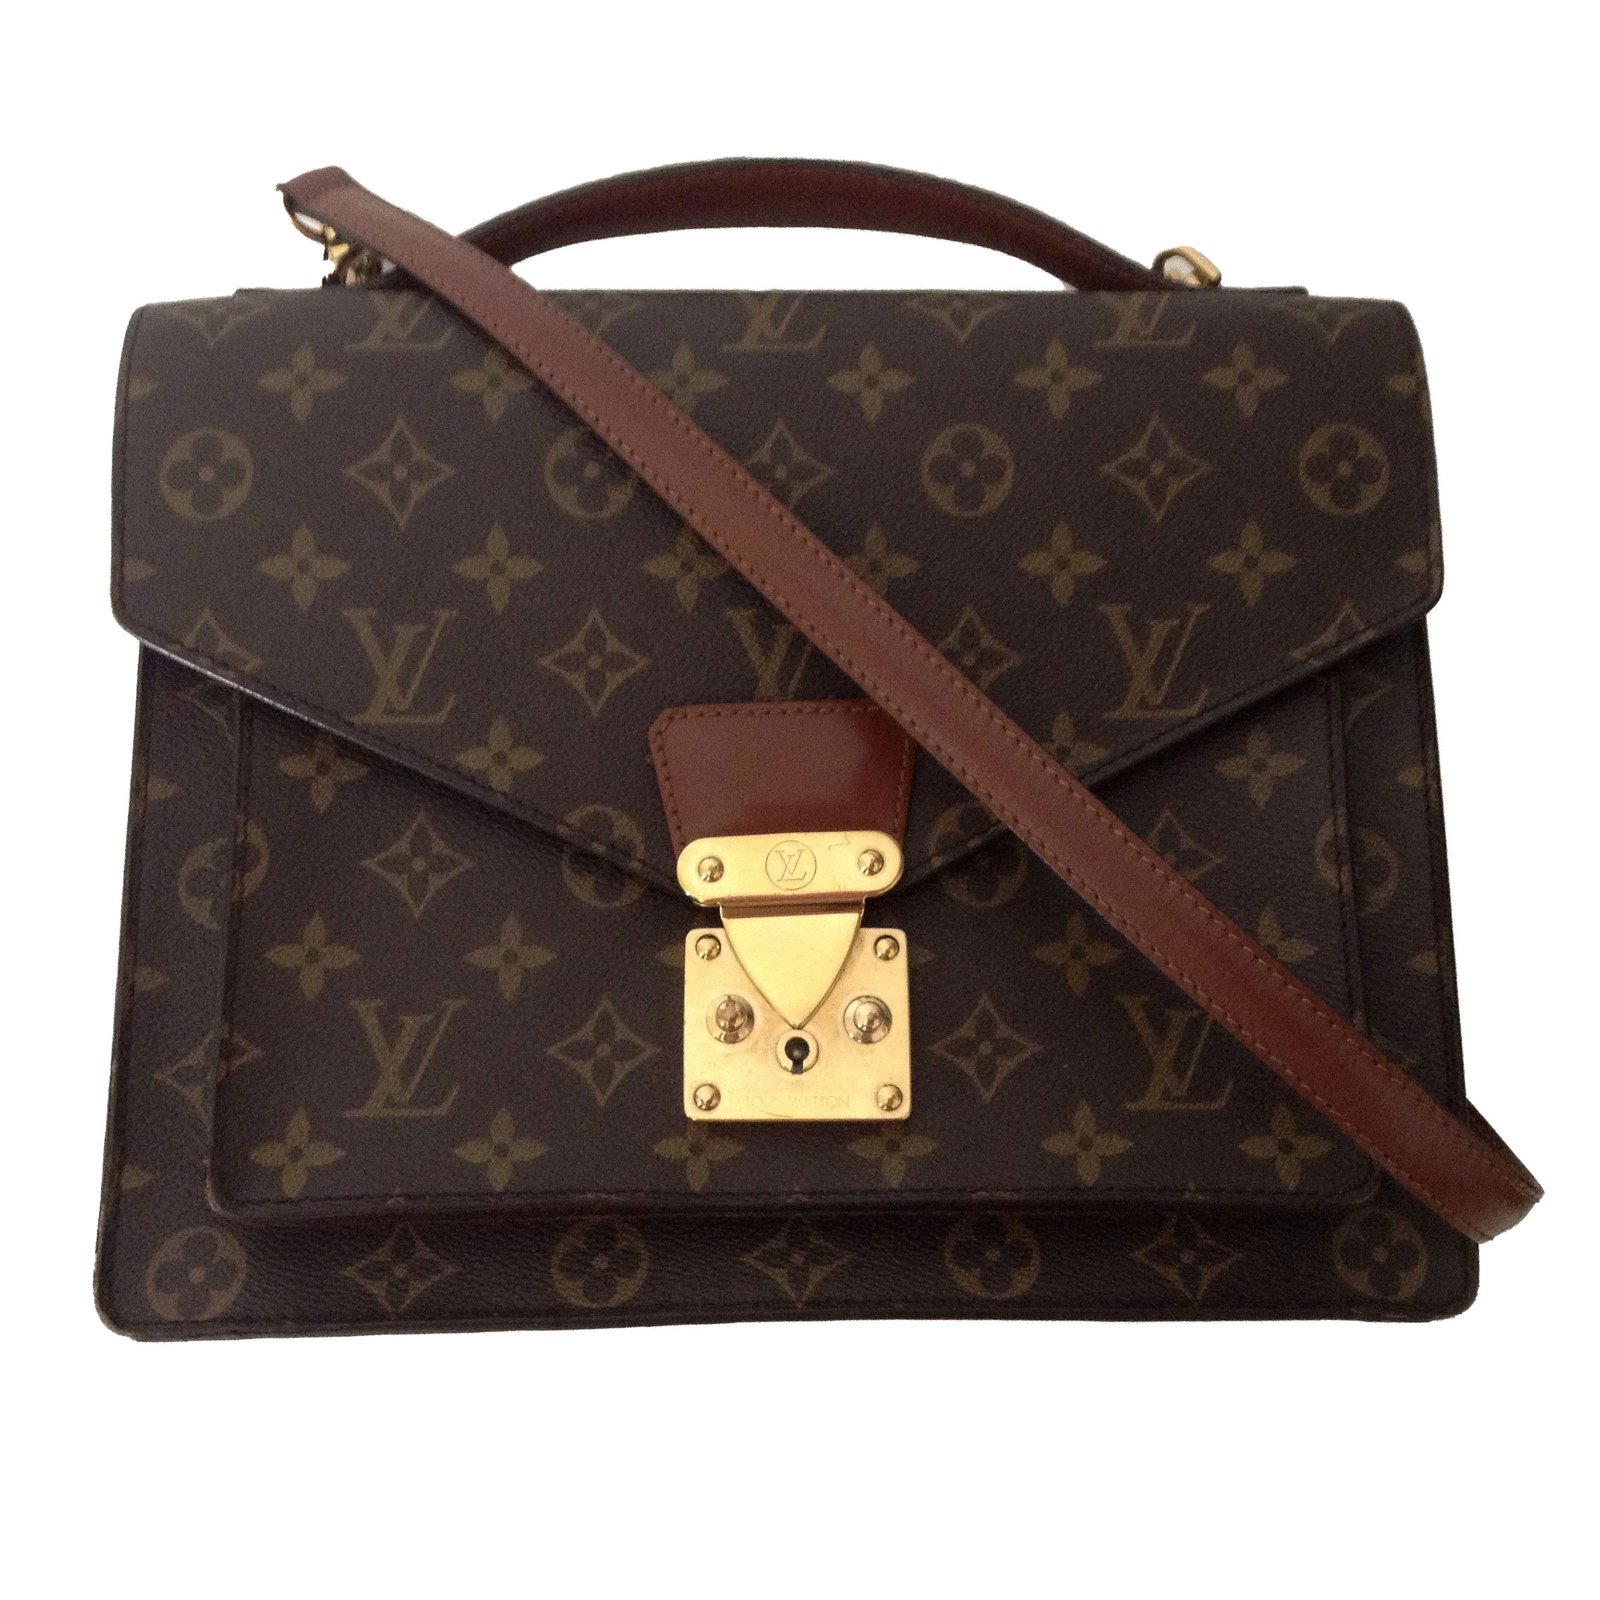 e356422f5882 ... Sacs à main Louis Vuitton Monceau Cuir Marron ref.40145 ...